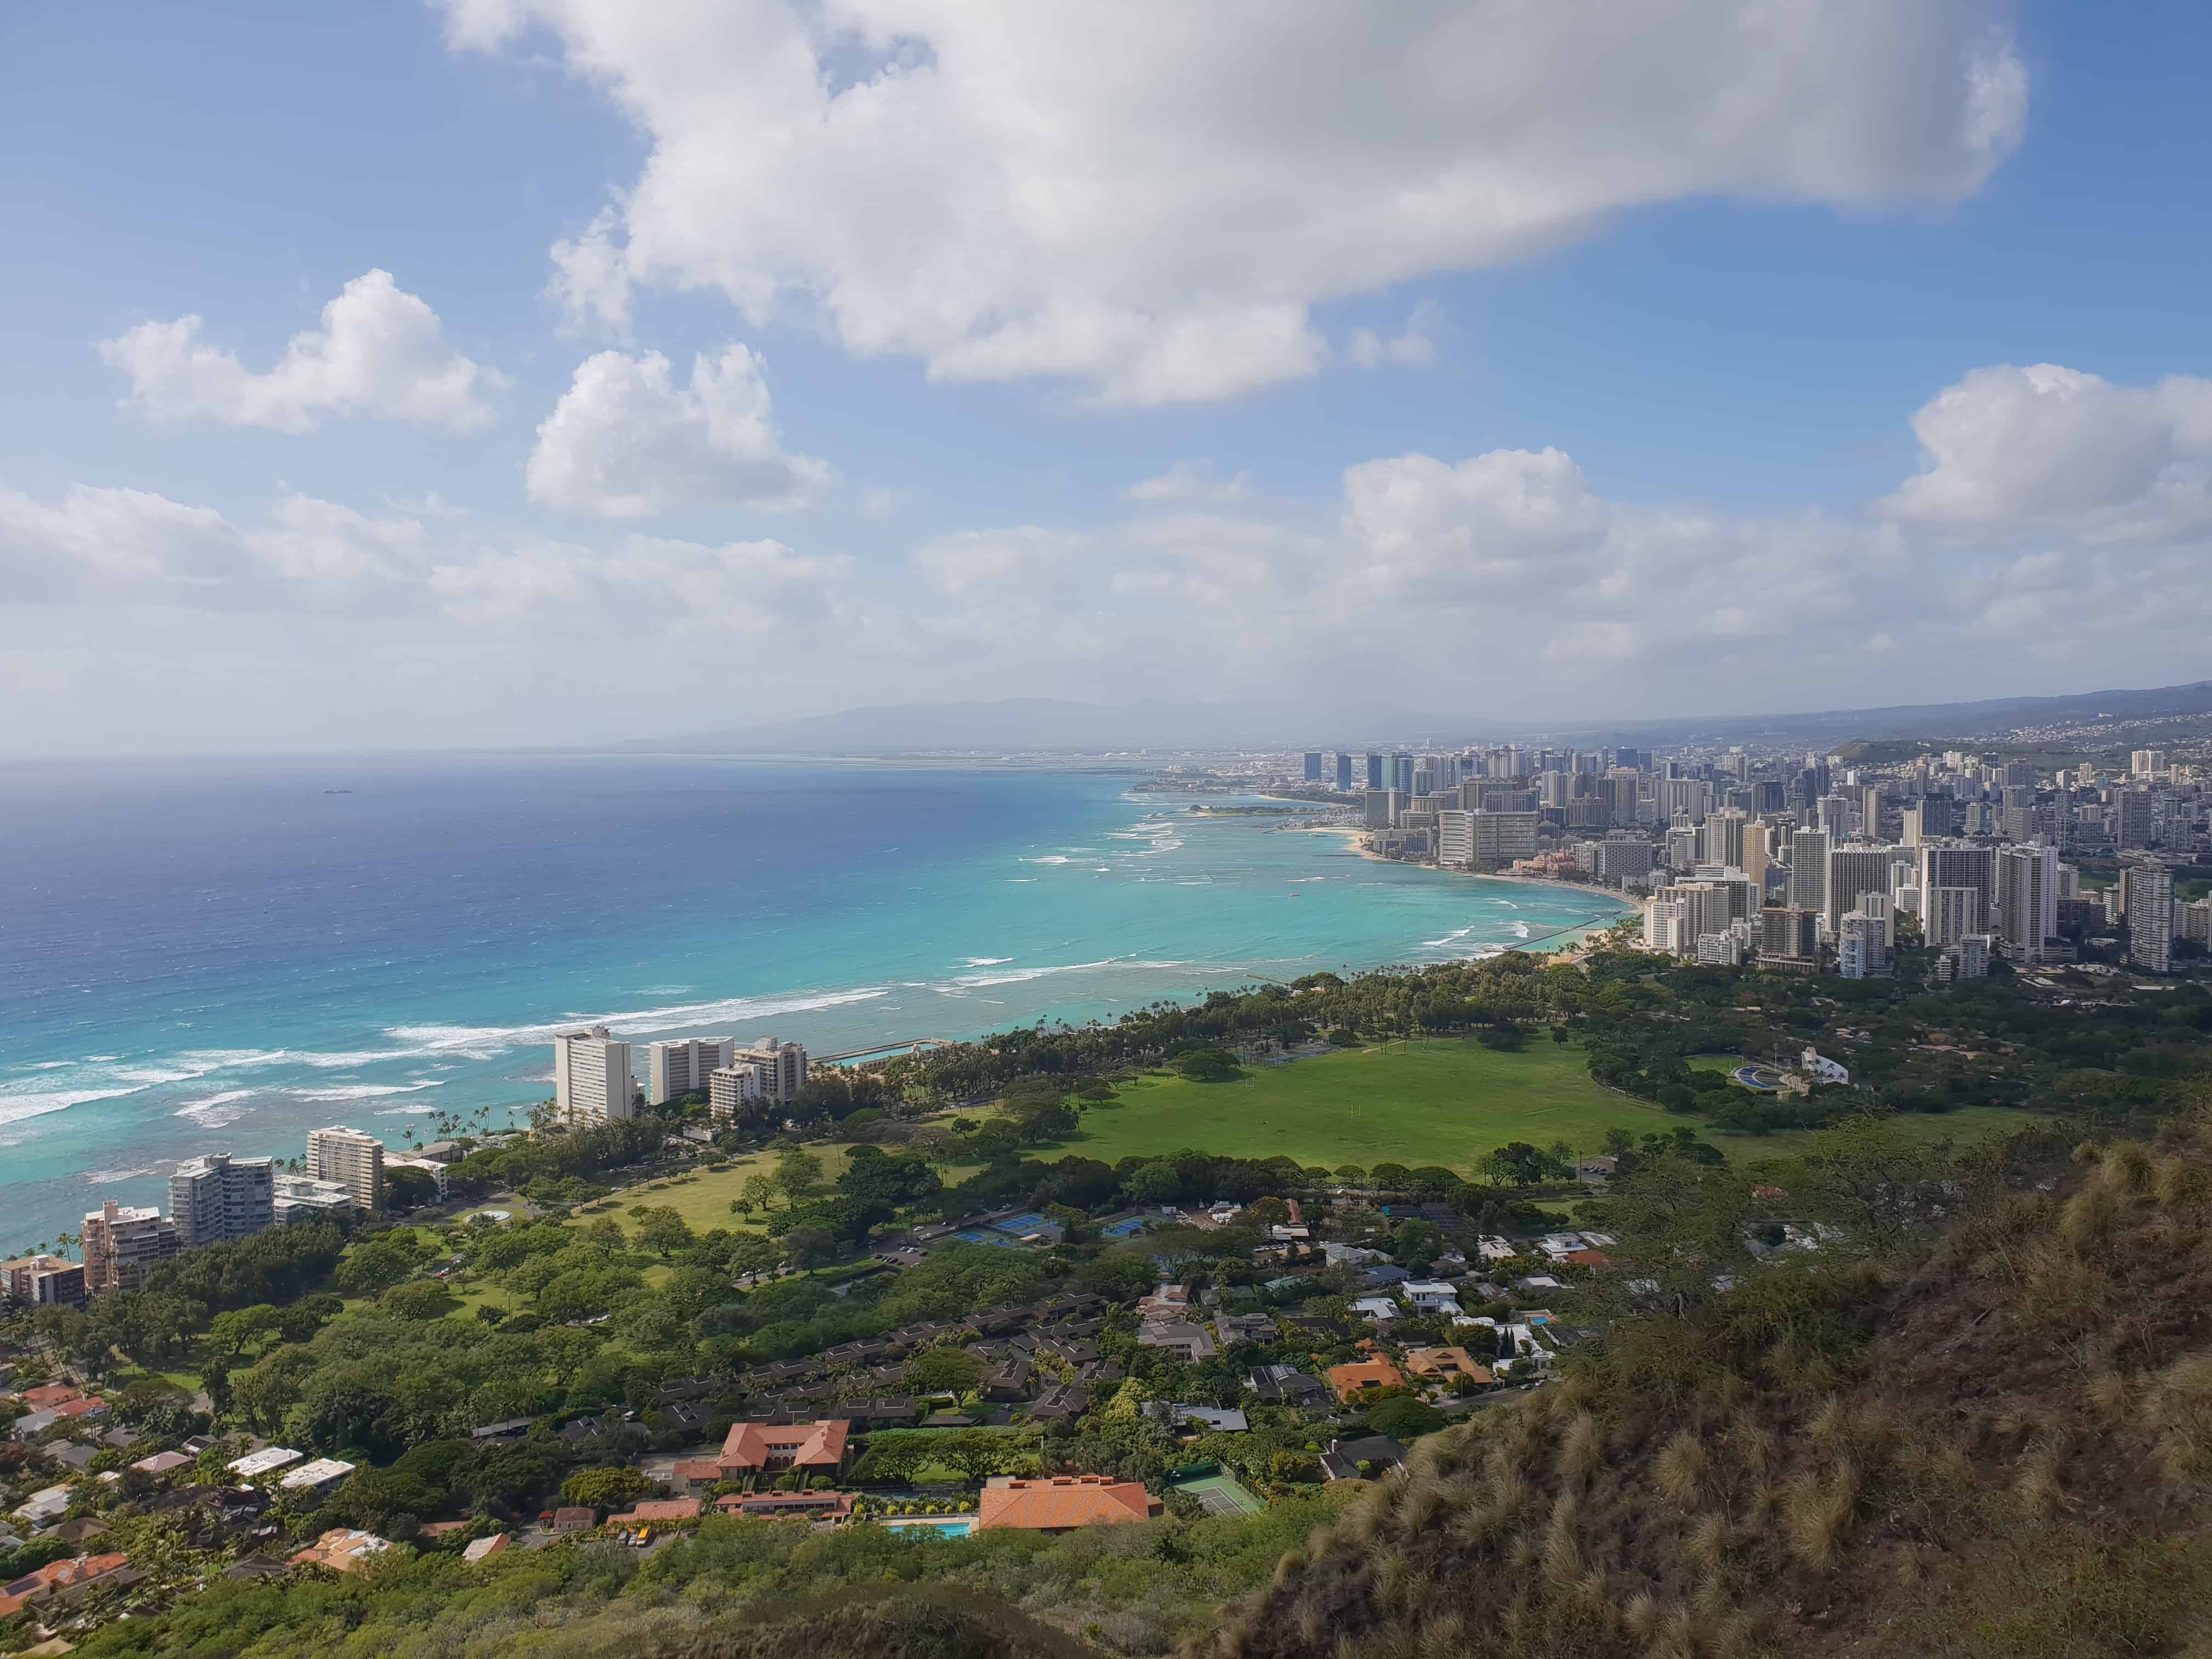 Looking out towards Waikiki and Honolulu from the top of Diamond Head crater